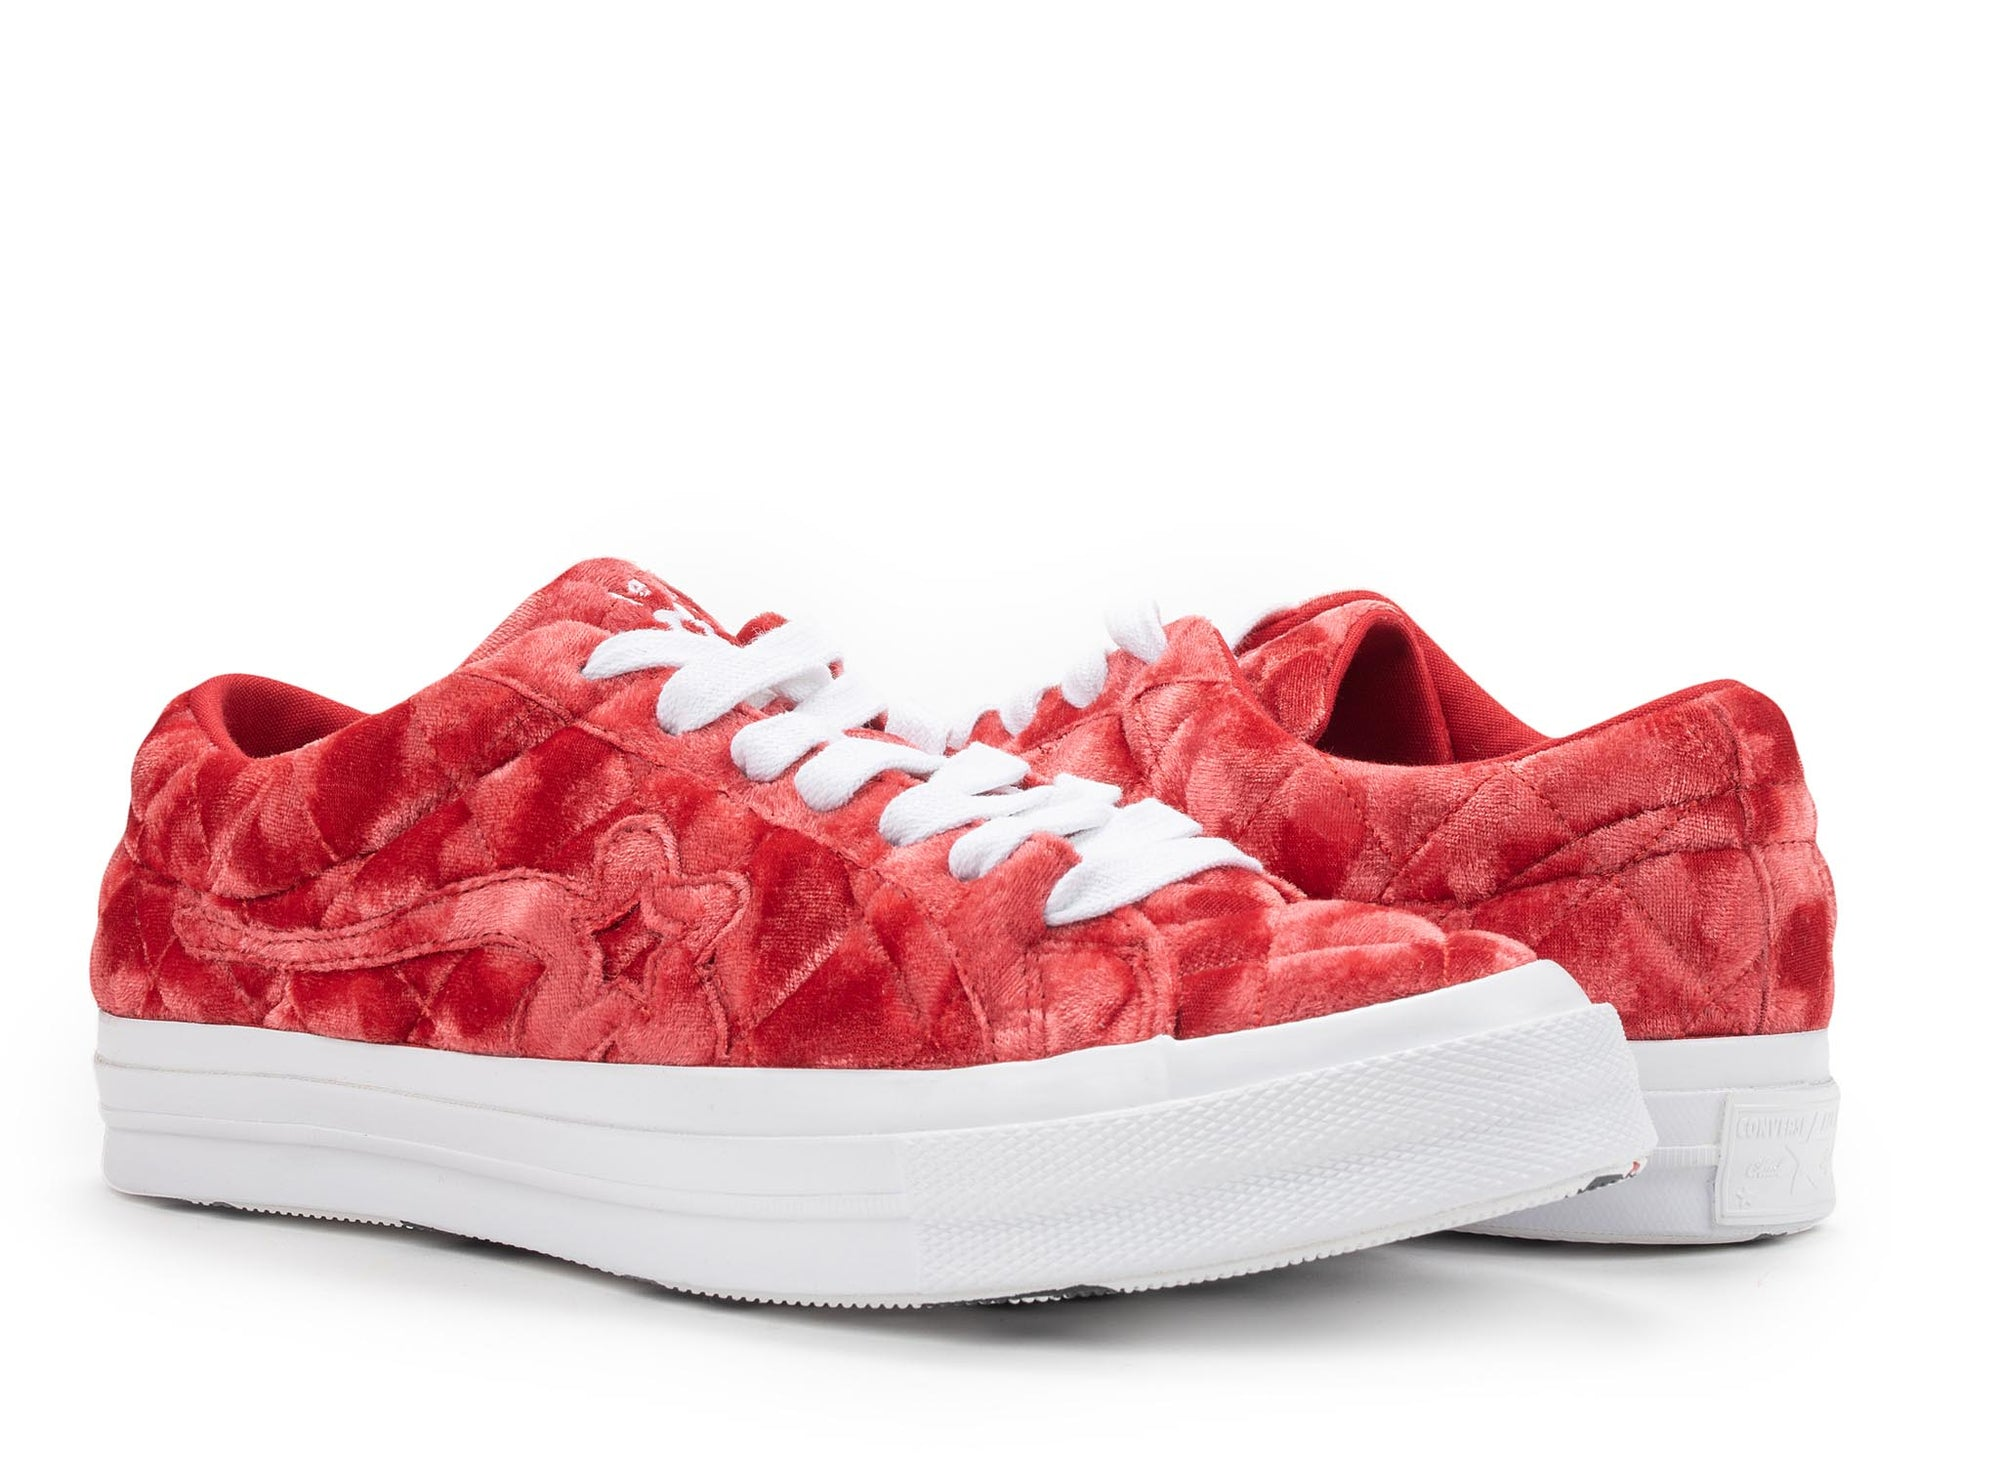 Converse One Star Ox Golf Le Fleur Ttc Quilted Velvet Barbados Cherry Oneness Boutique